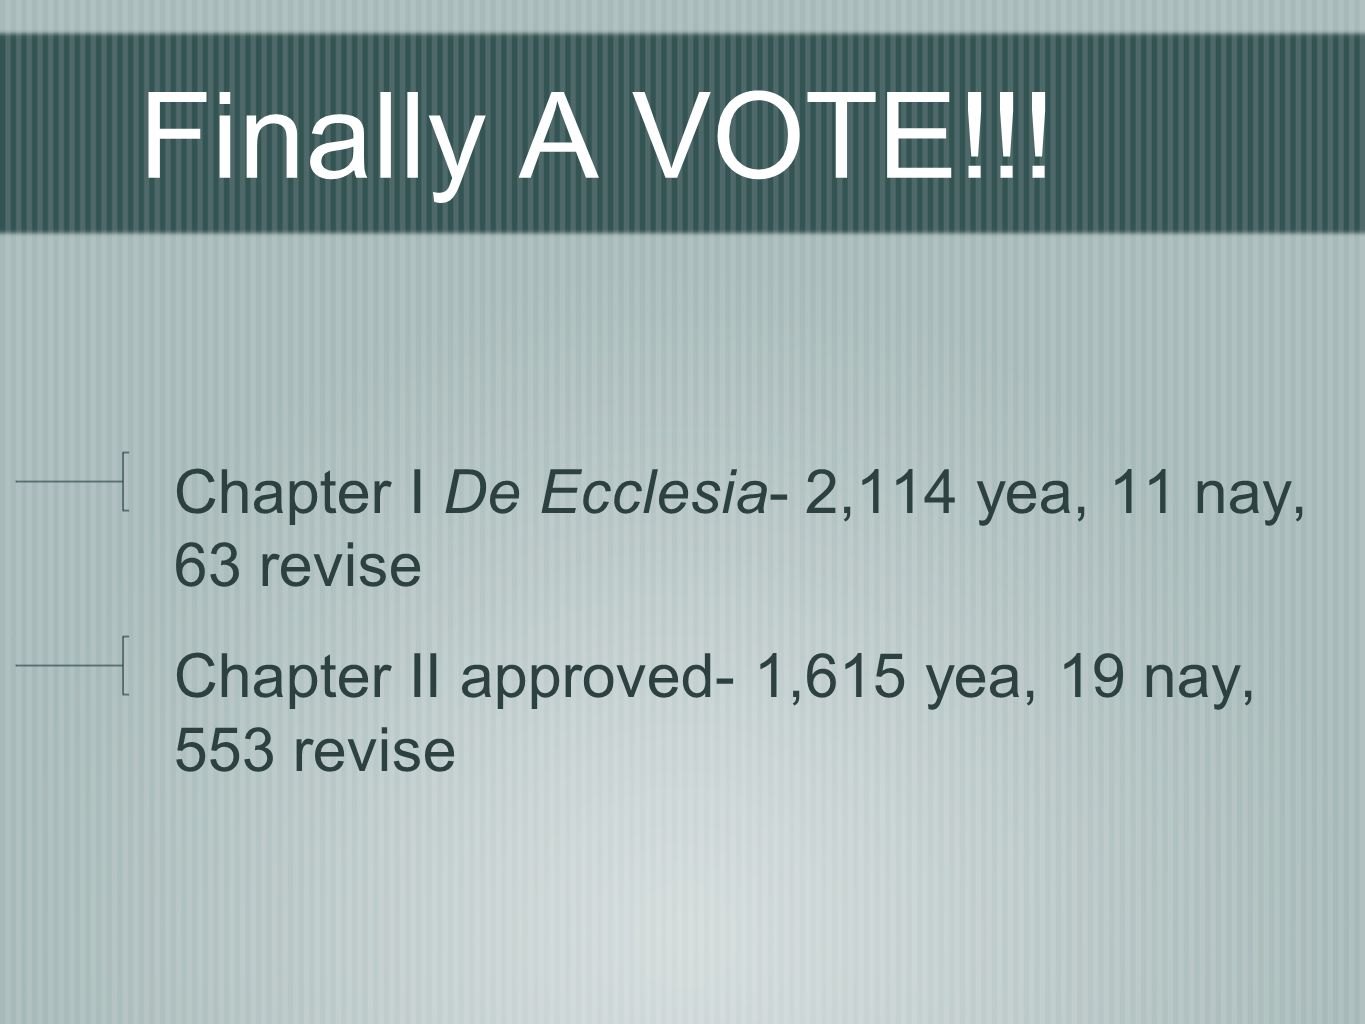 Finally A VOTE!!! Chapter I De Ecclesia- 2,114 yea, 11 nay, 63 revise Chapter II approved- 1,615 yea, 19 nay, 553 revise